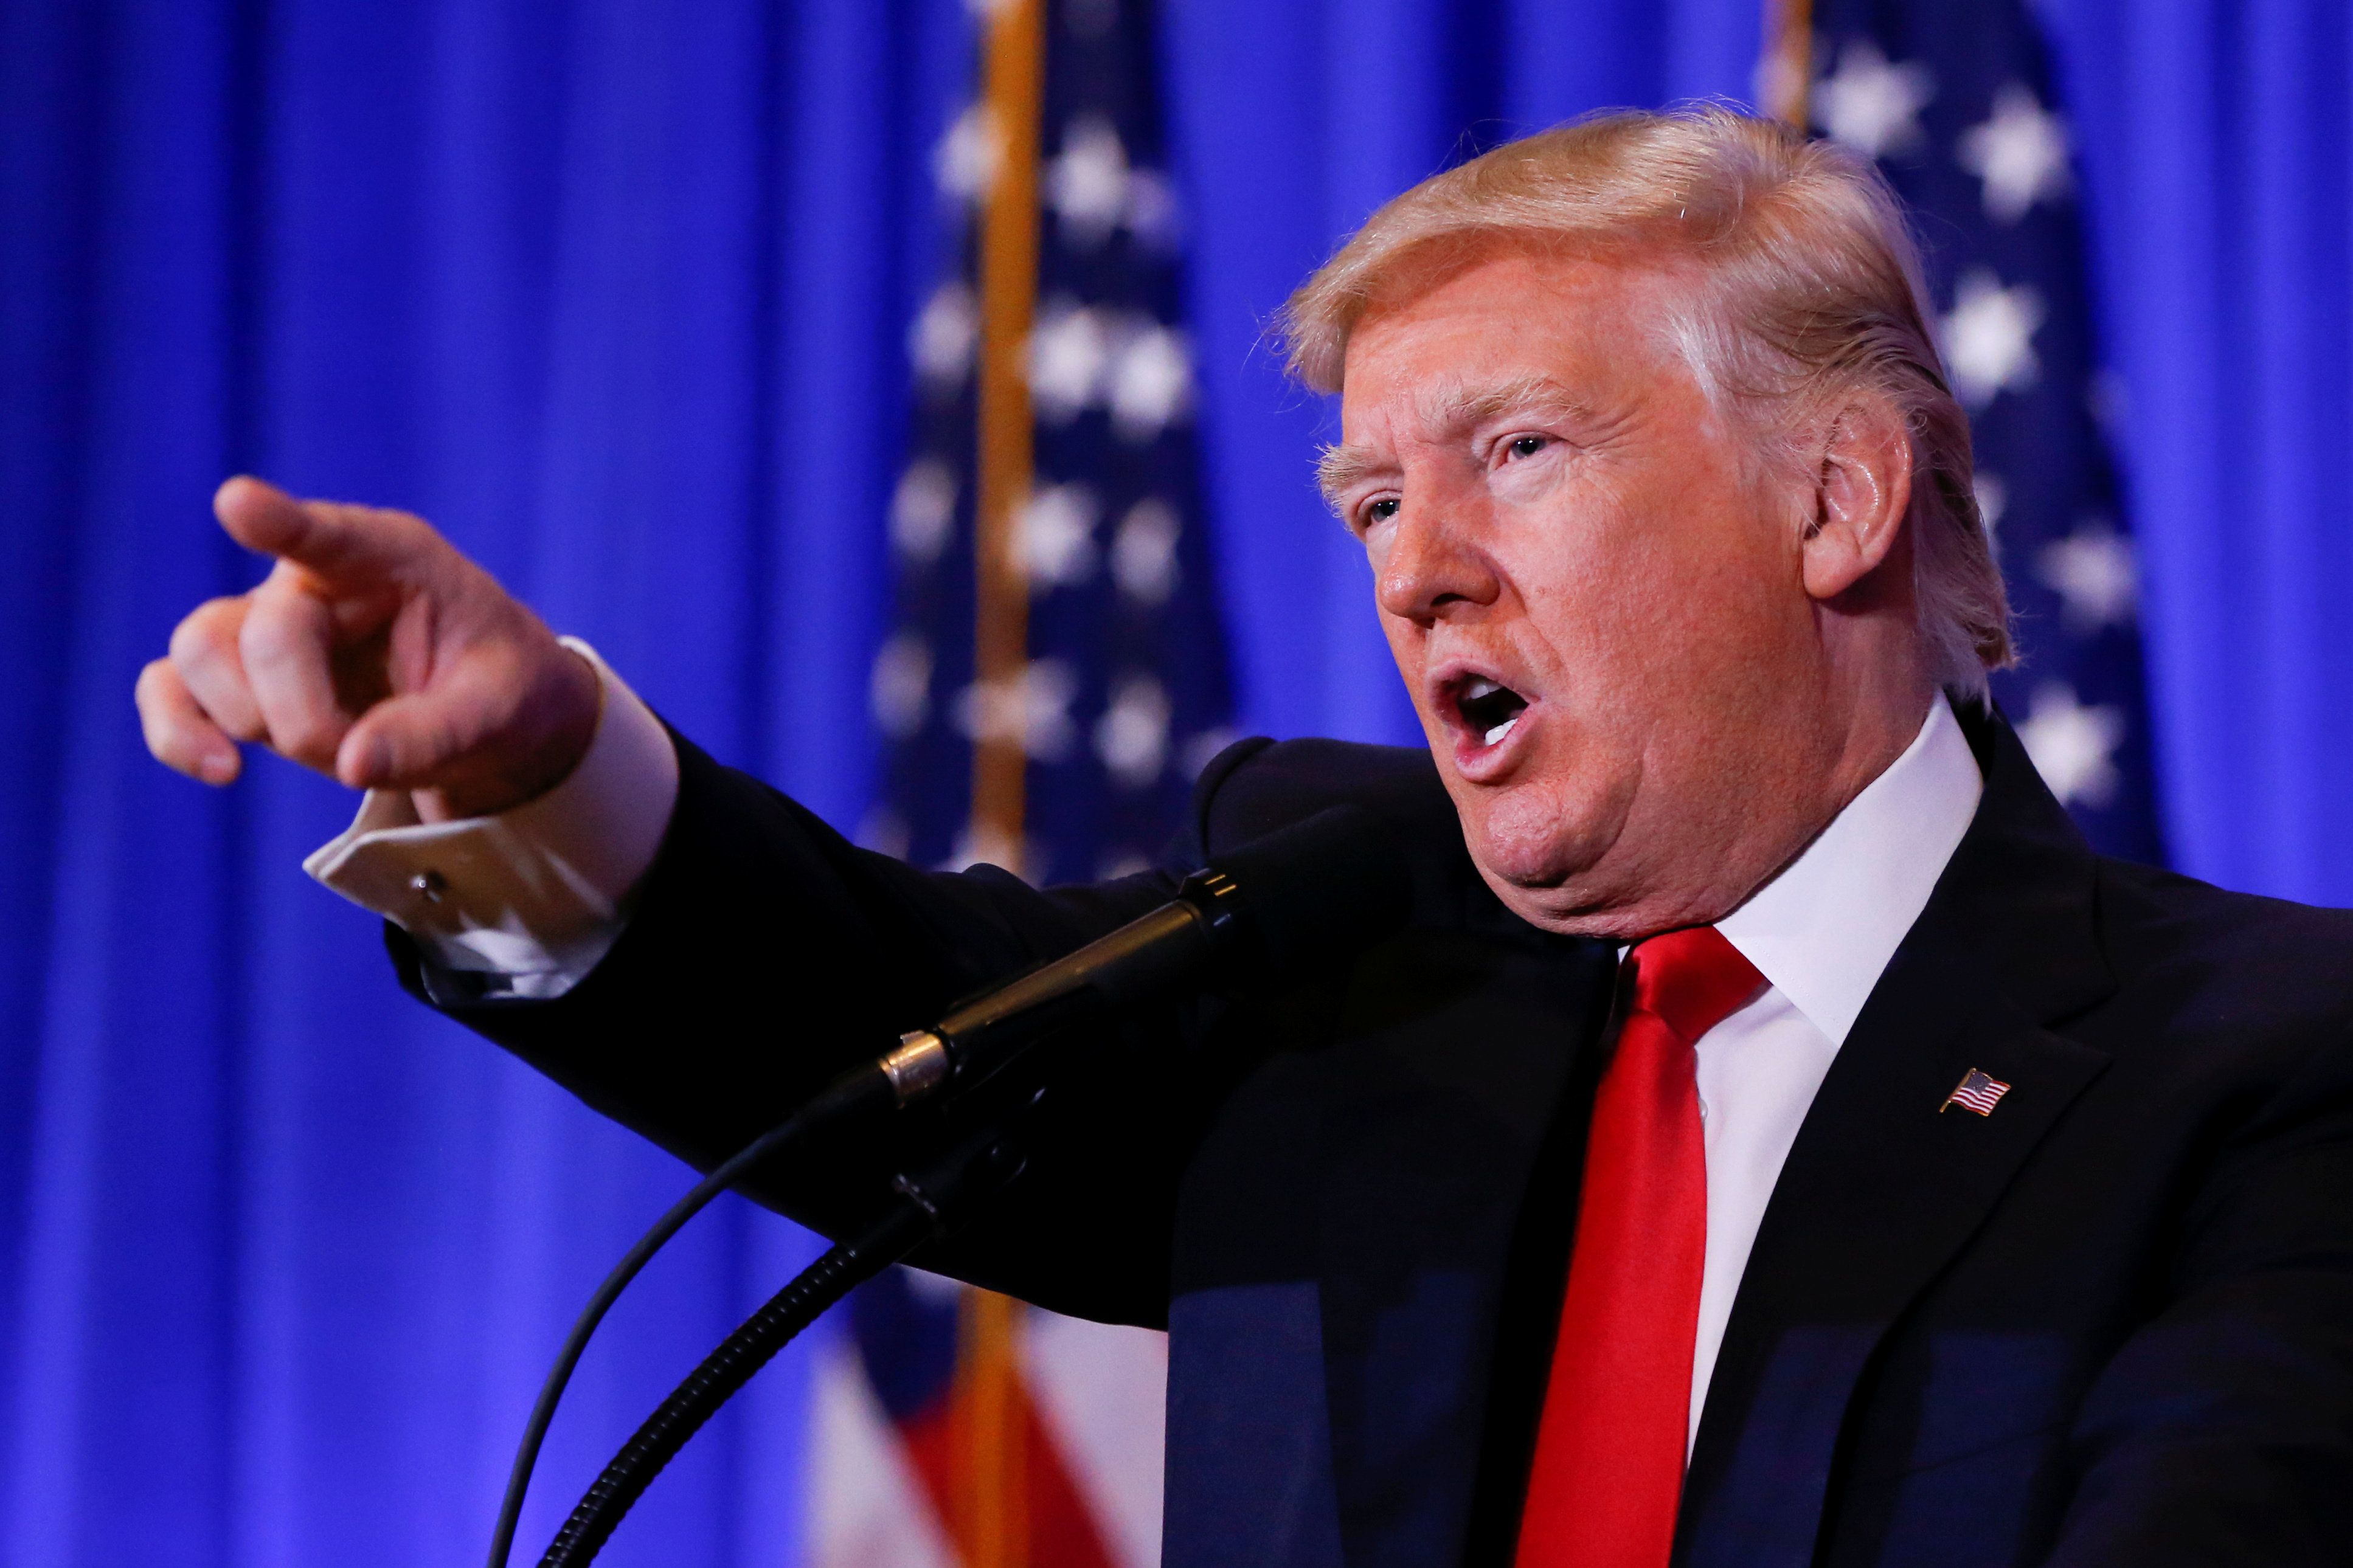 President-elect Donald Trump spoke Wednesday about his business plans and U.S. intelligence regarding Russia.